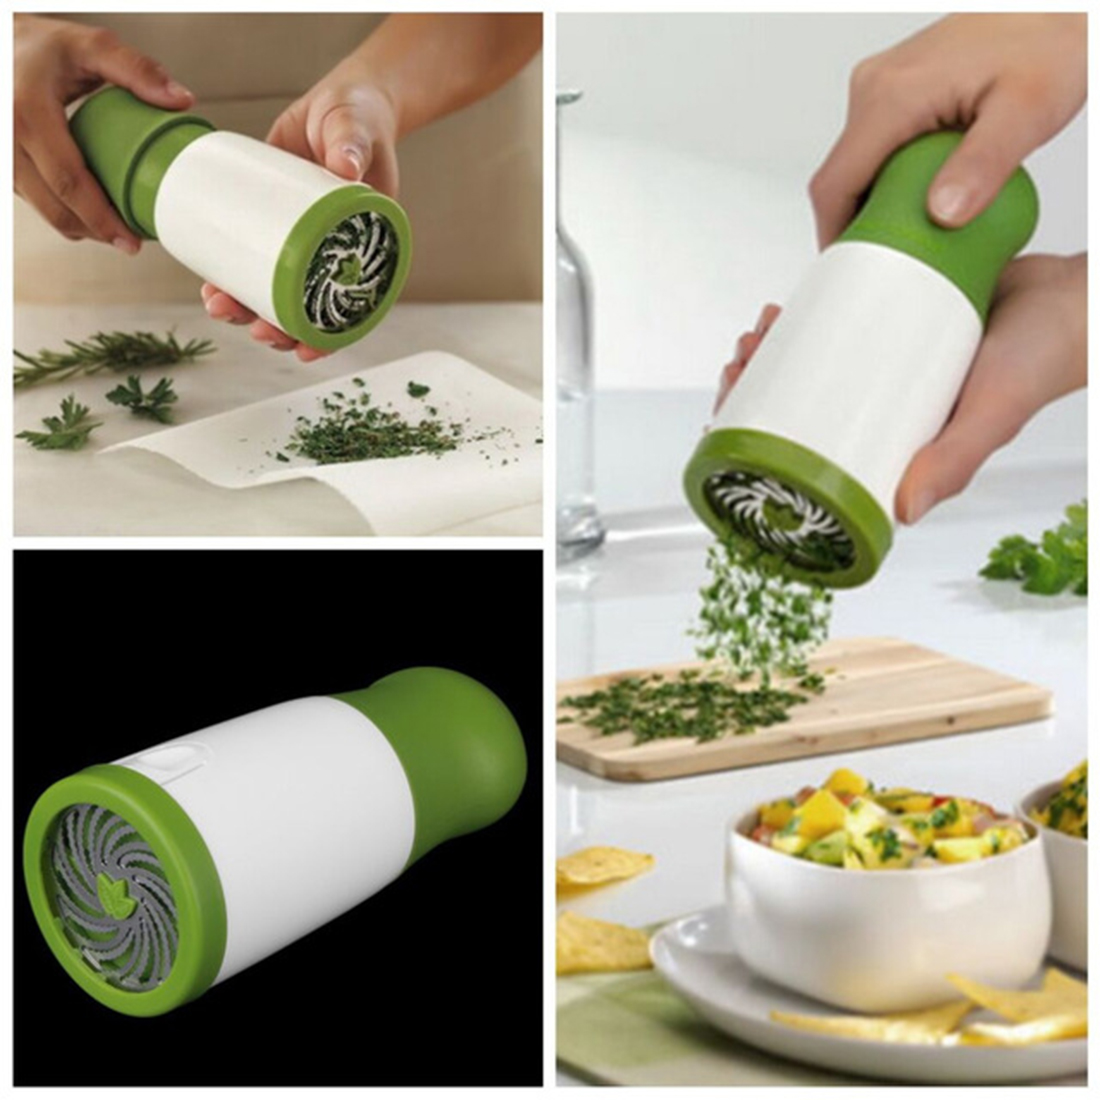 new Spice Parsley Shredder Chopper Fruit Vegetable Cutter New Creative Cooking Tools parsley shredder